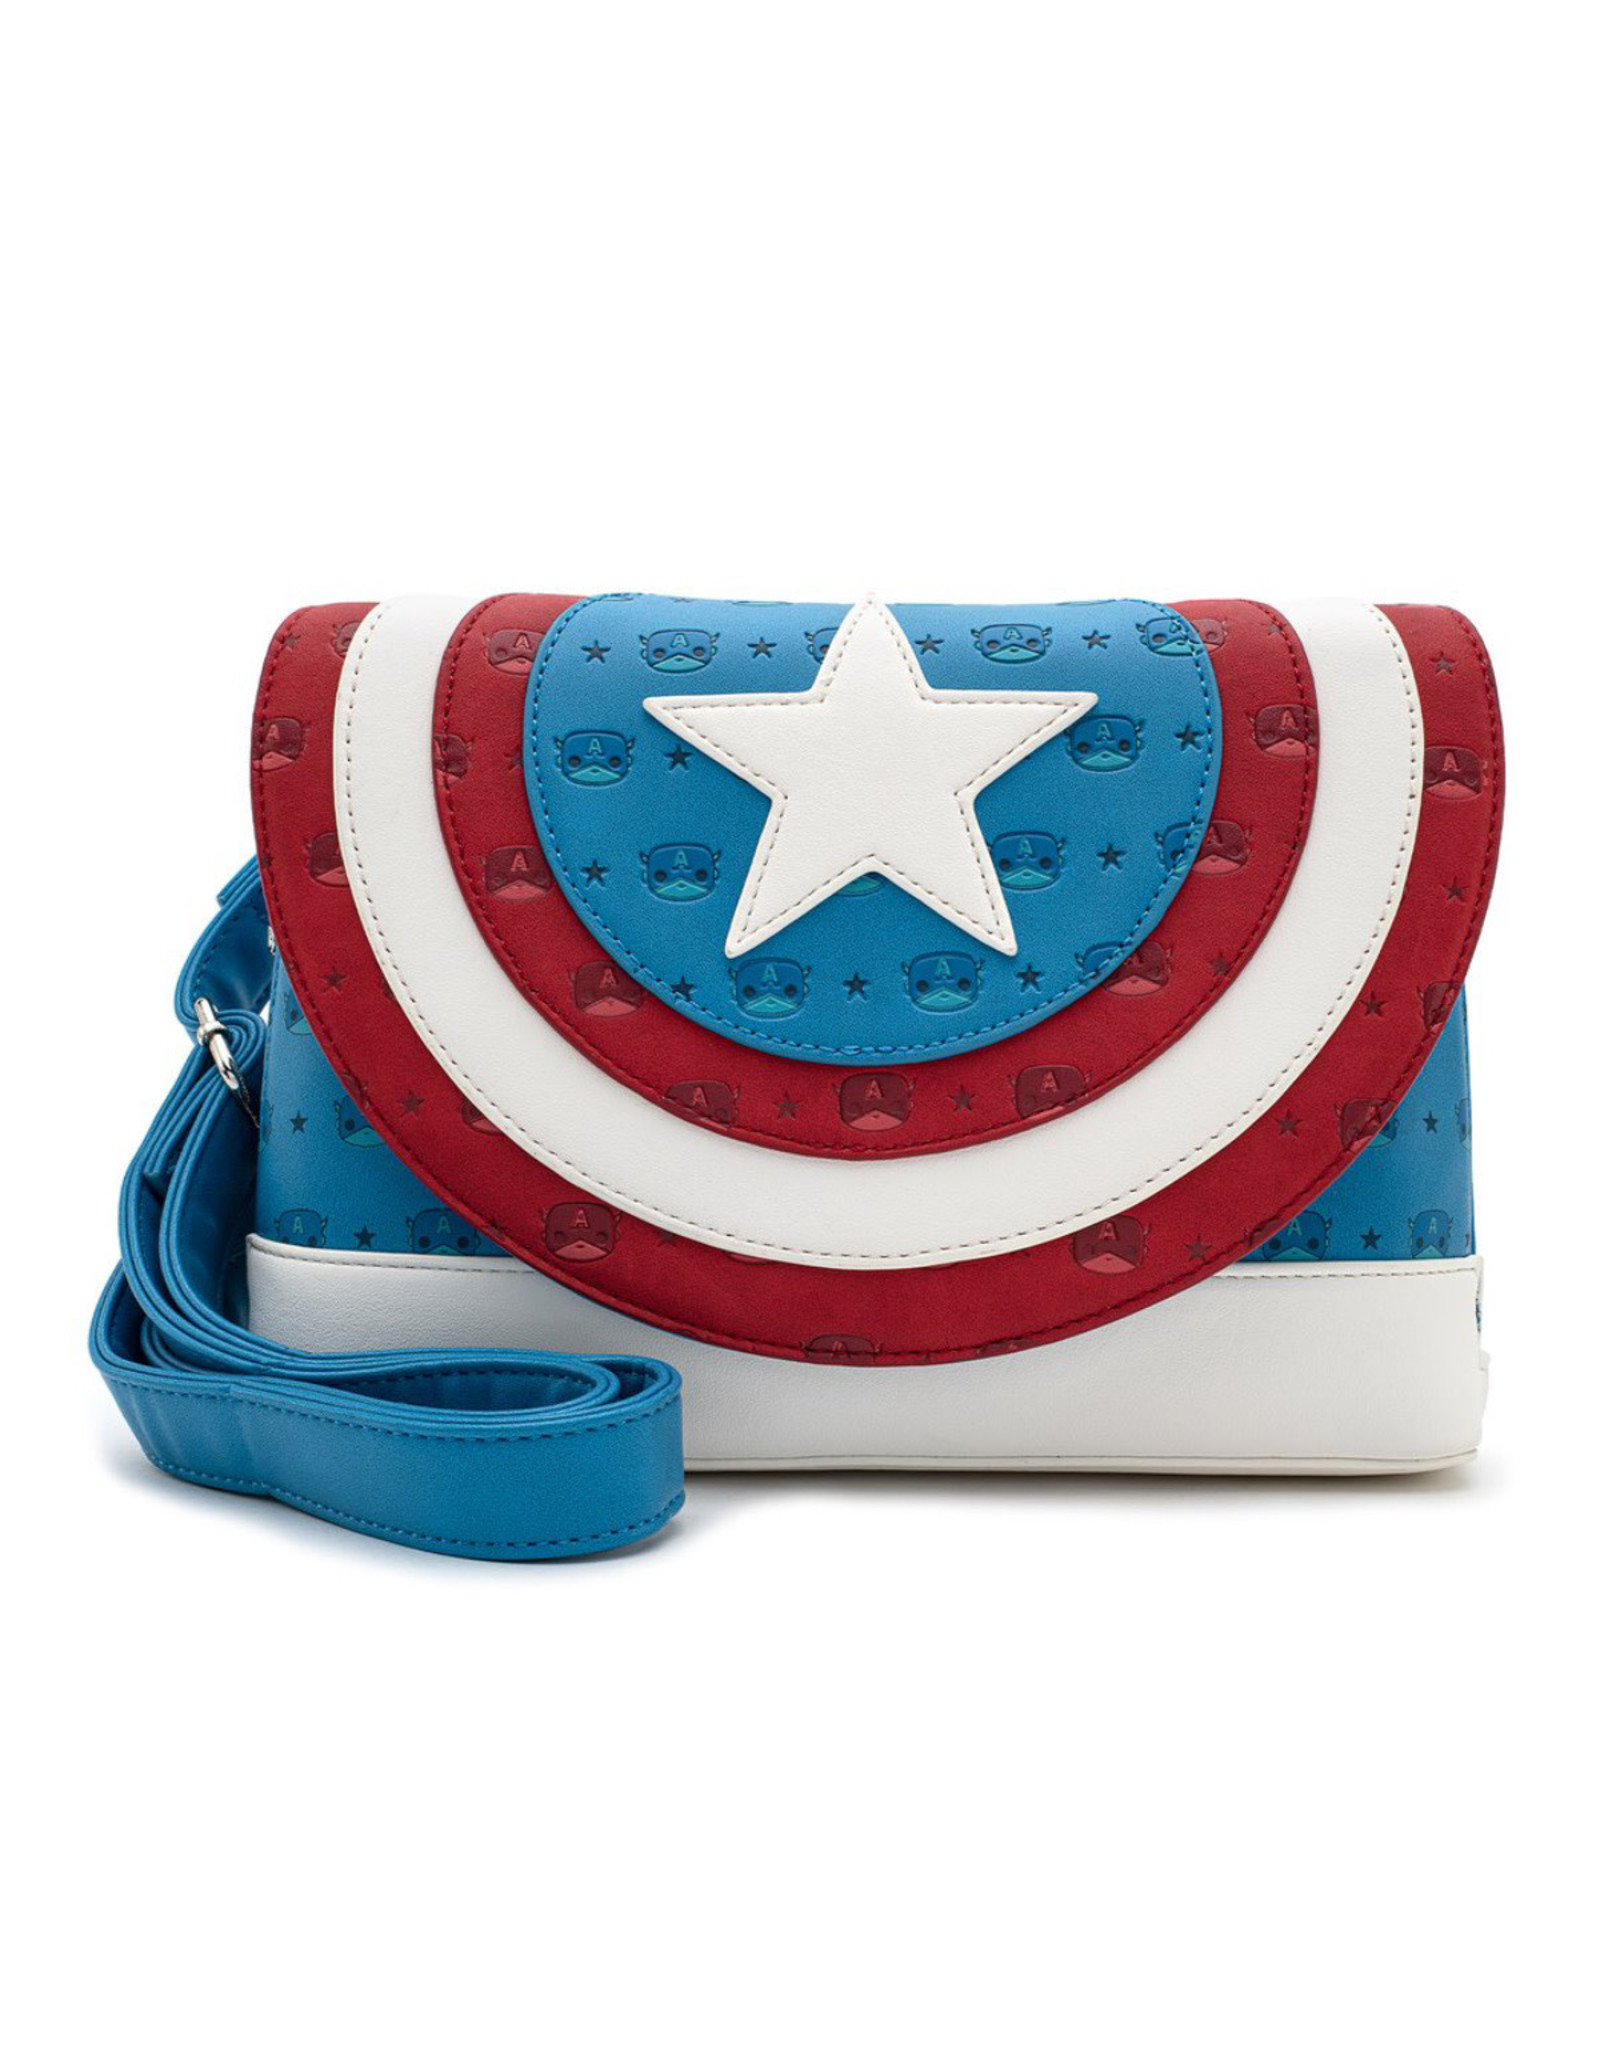 Marvel Marvel ( Loungefly Handbag ) Captain America